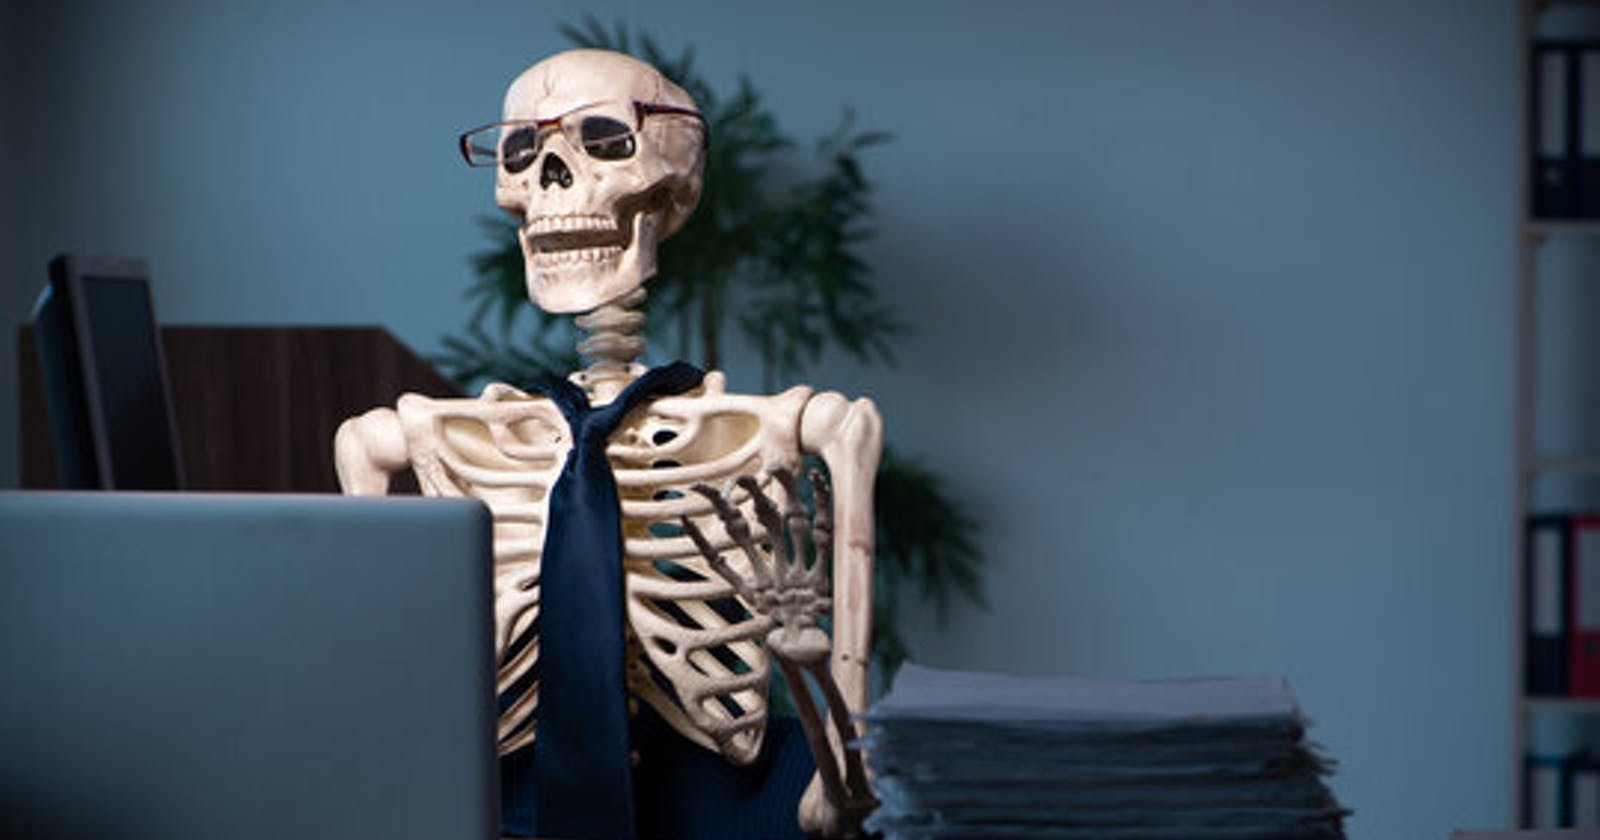 Skeleton of HTML, CSS, and JAVASCRIPT